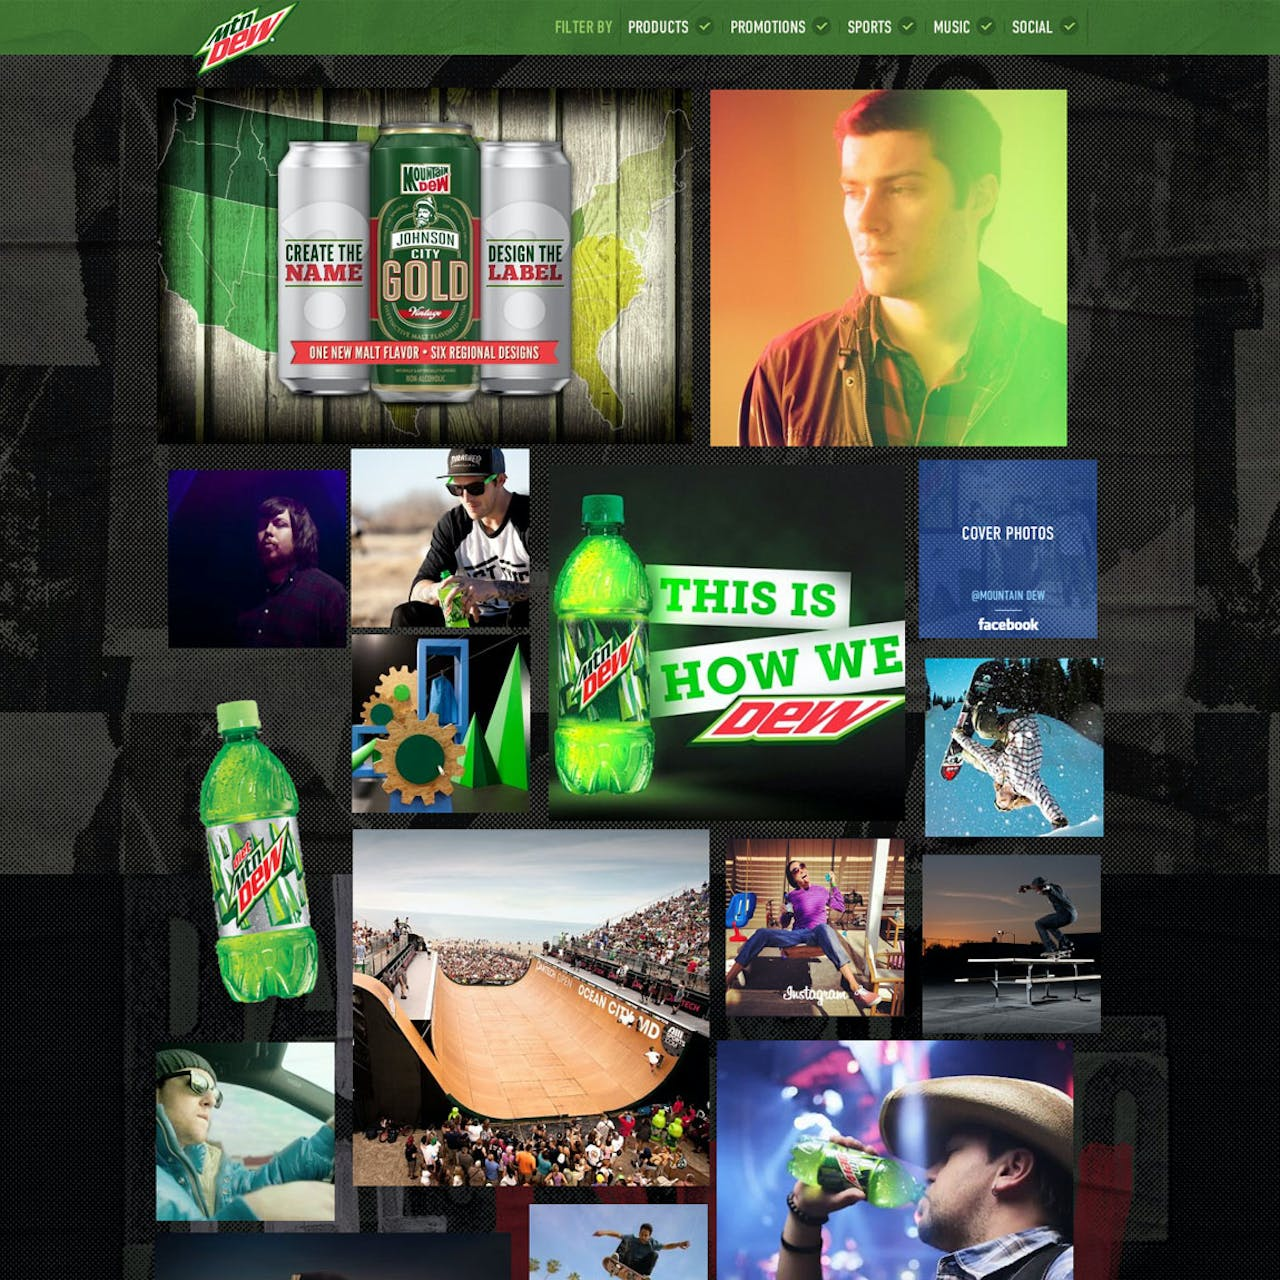 Mountain Dew Website Screenshot